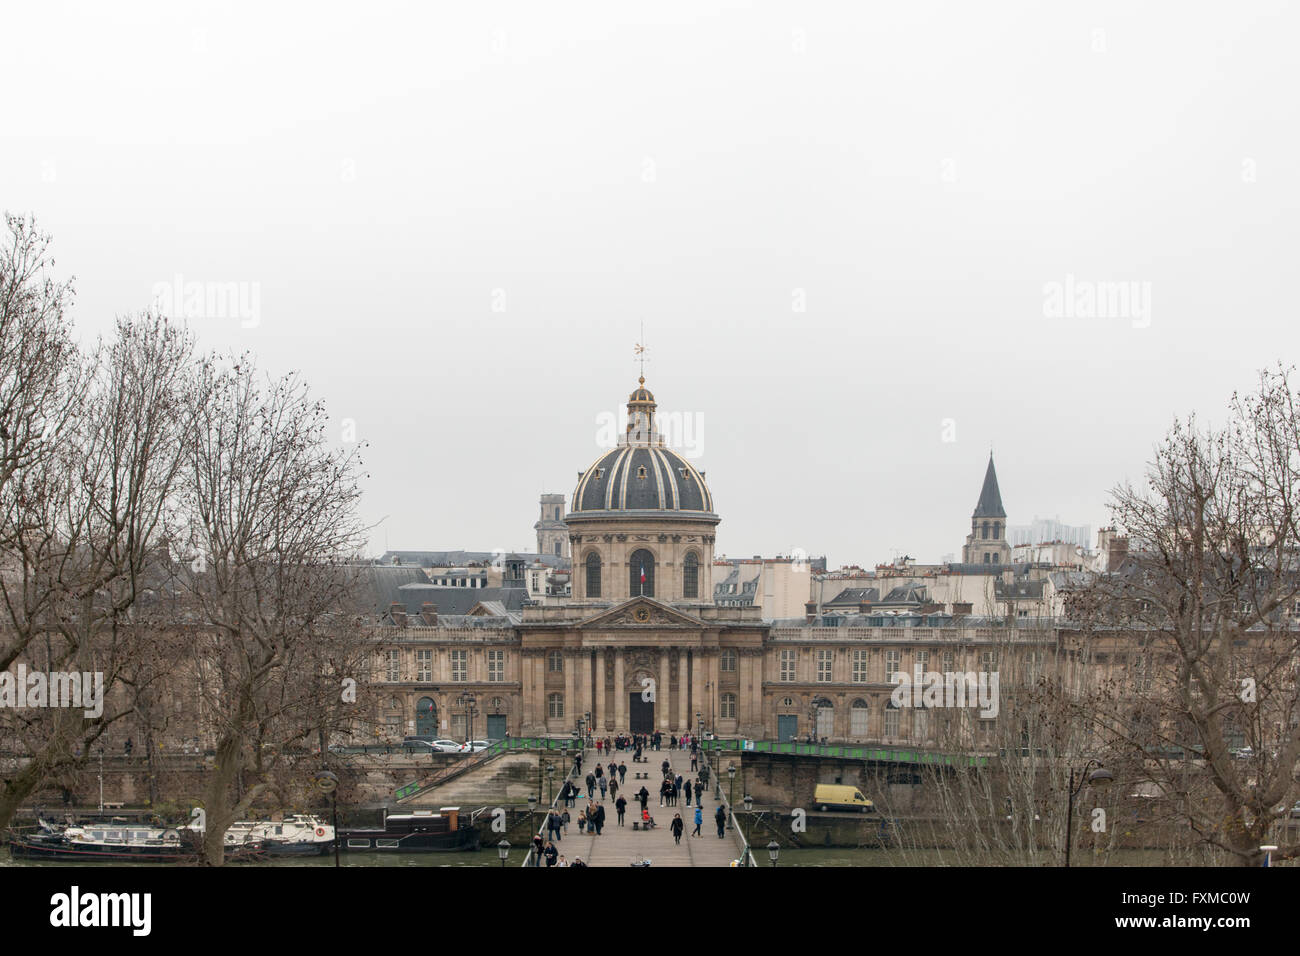 Institut de France, famous French learned society, in Paris. - Stock Image